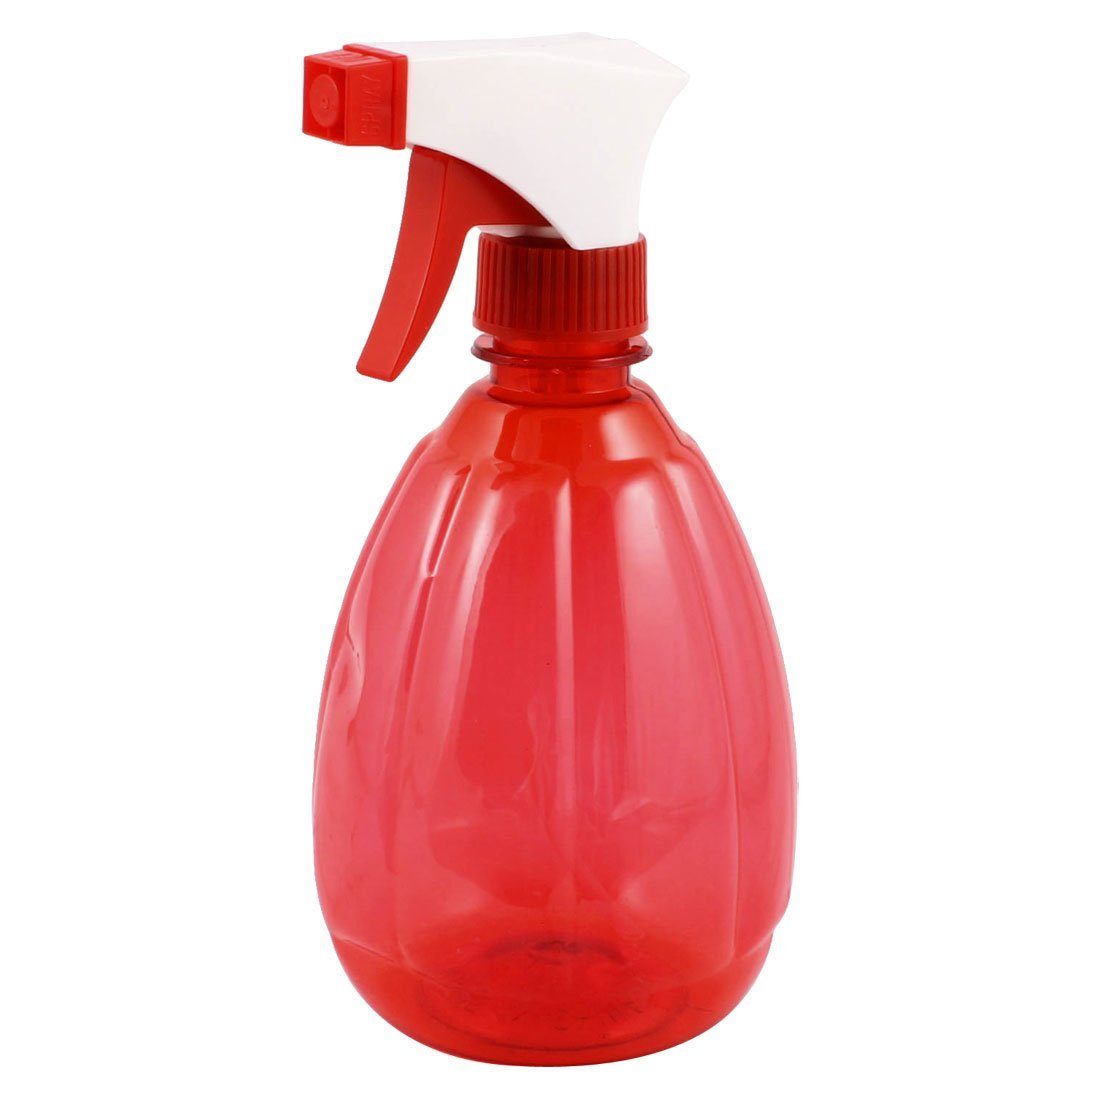 500ml Plastic Trigger Hairdressing Watering Spray Bottle Clear Red a13041600ux0880